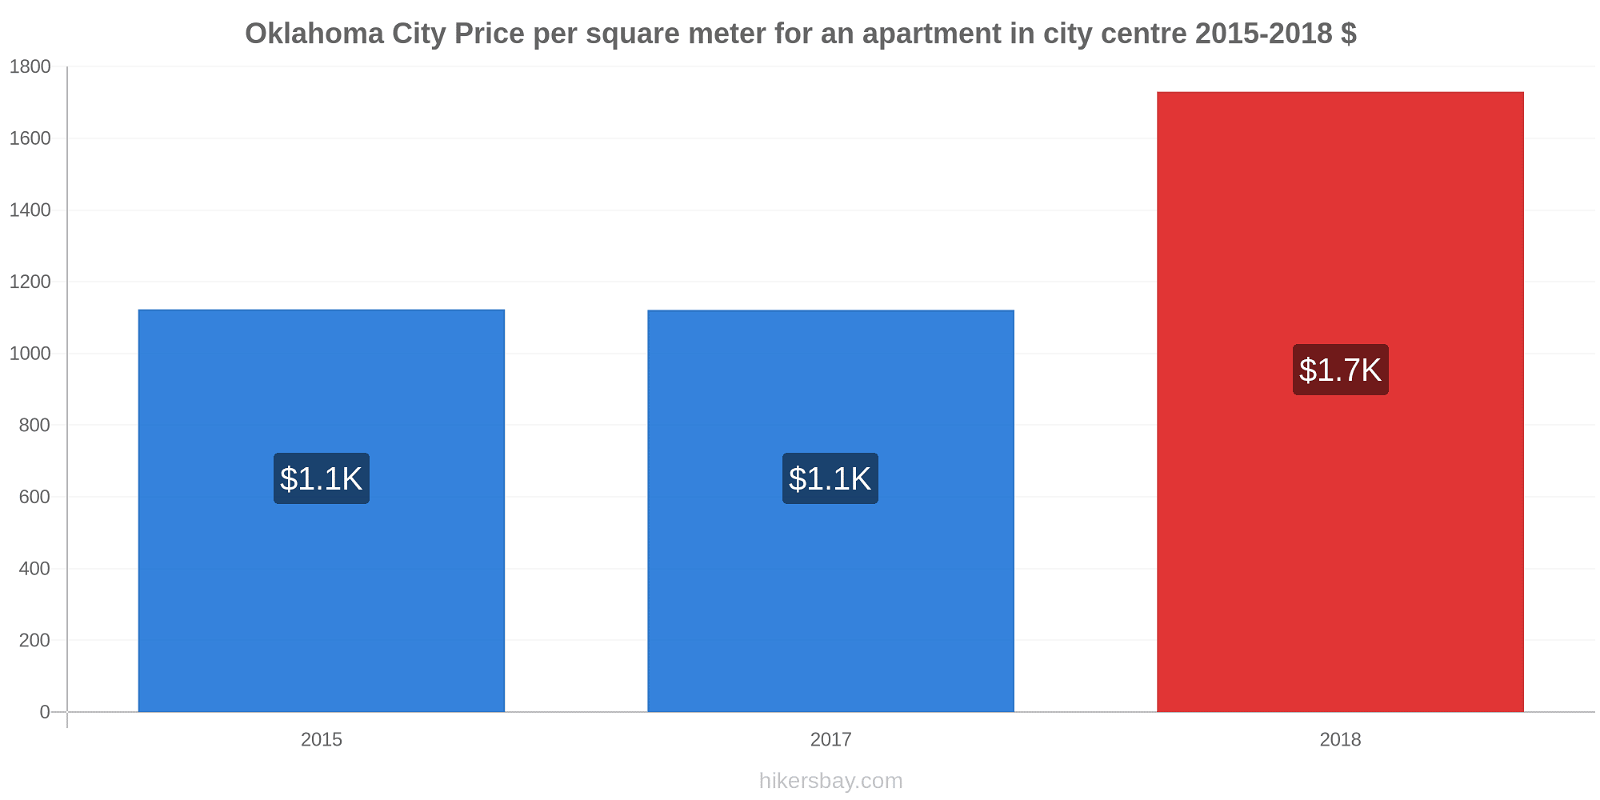 Oklahoma City price changes Price per square meter for an apartment in city centre hikersbay.com